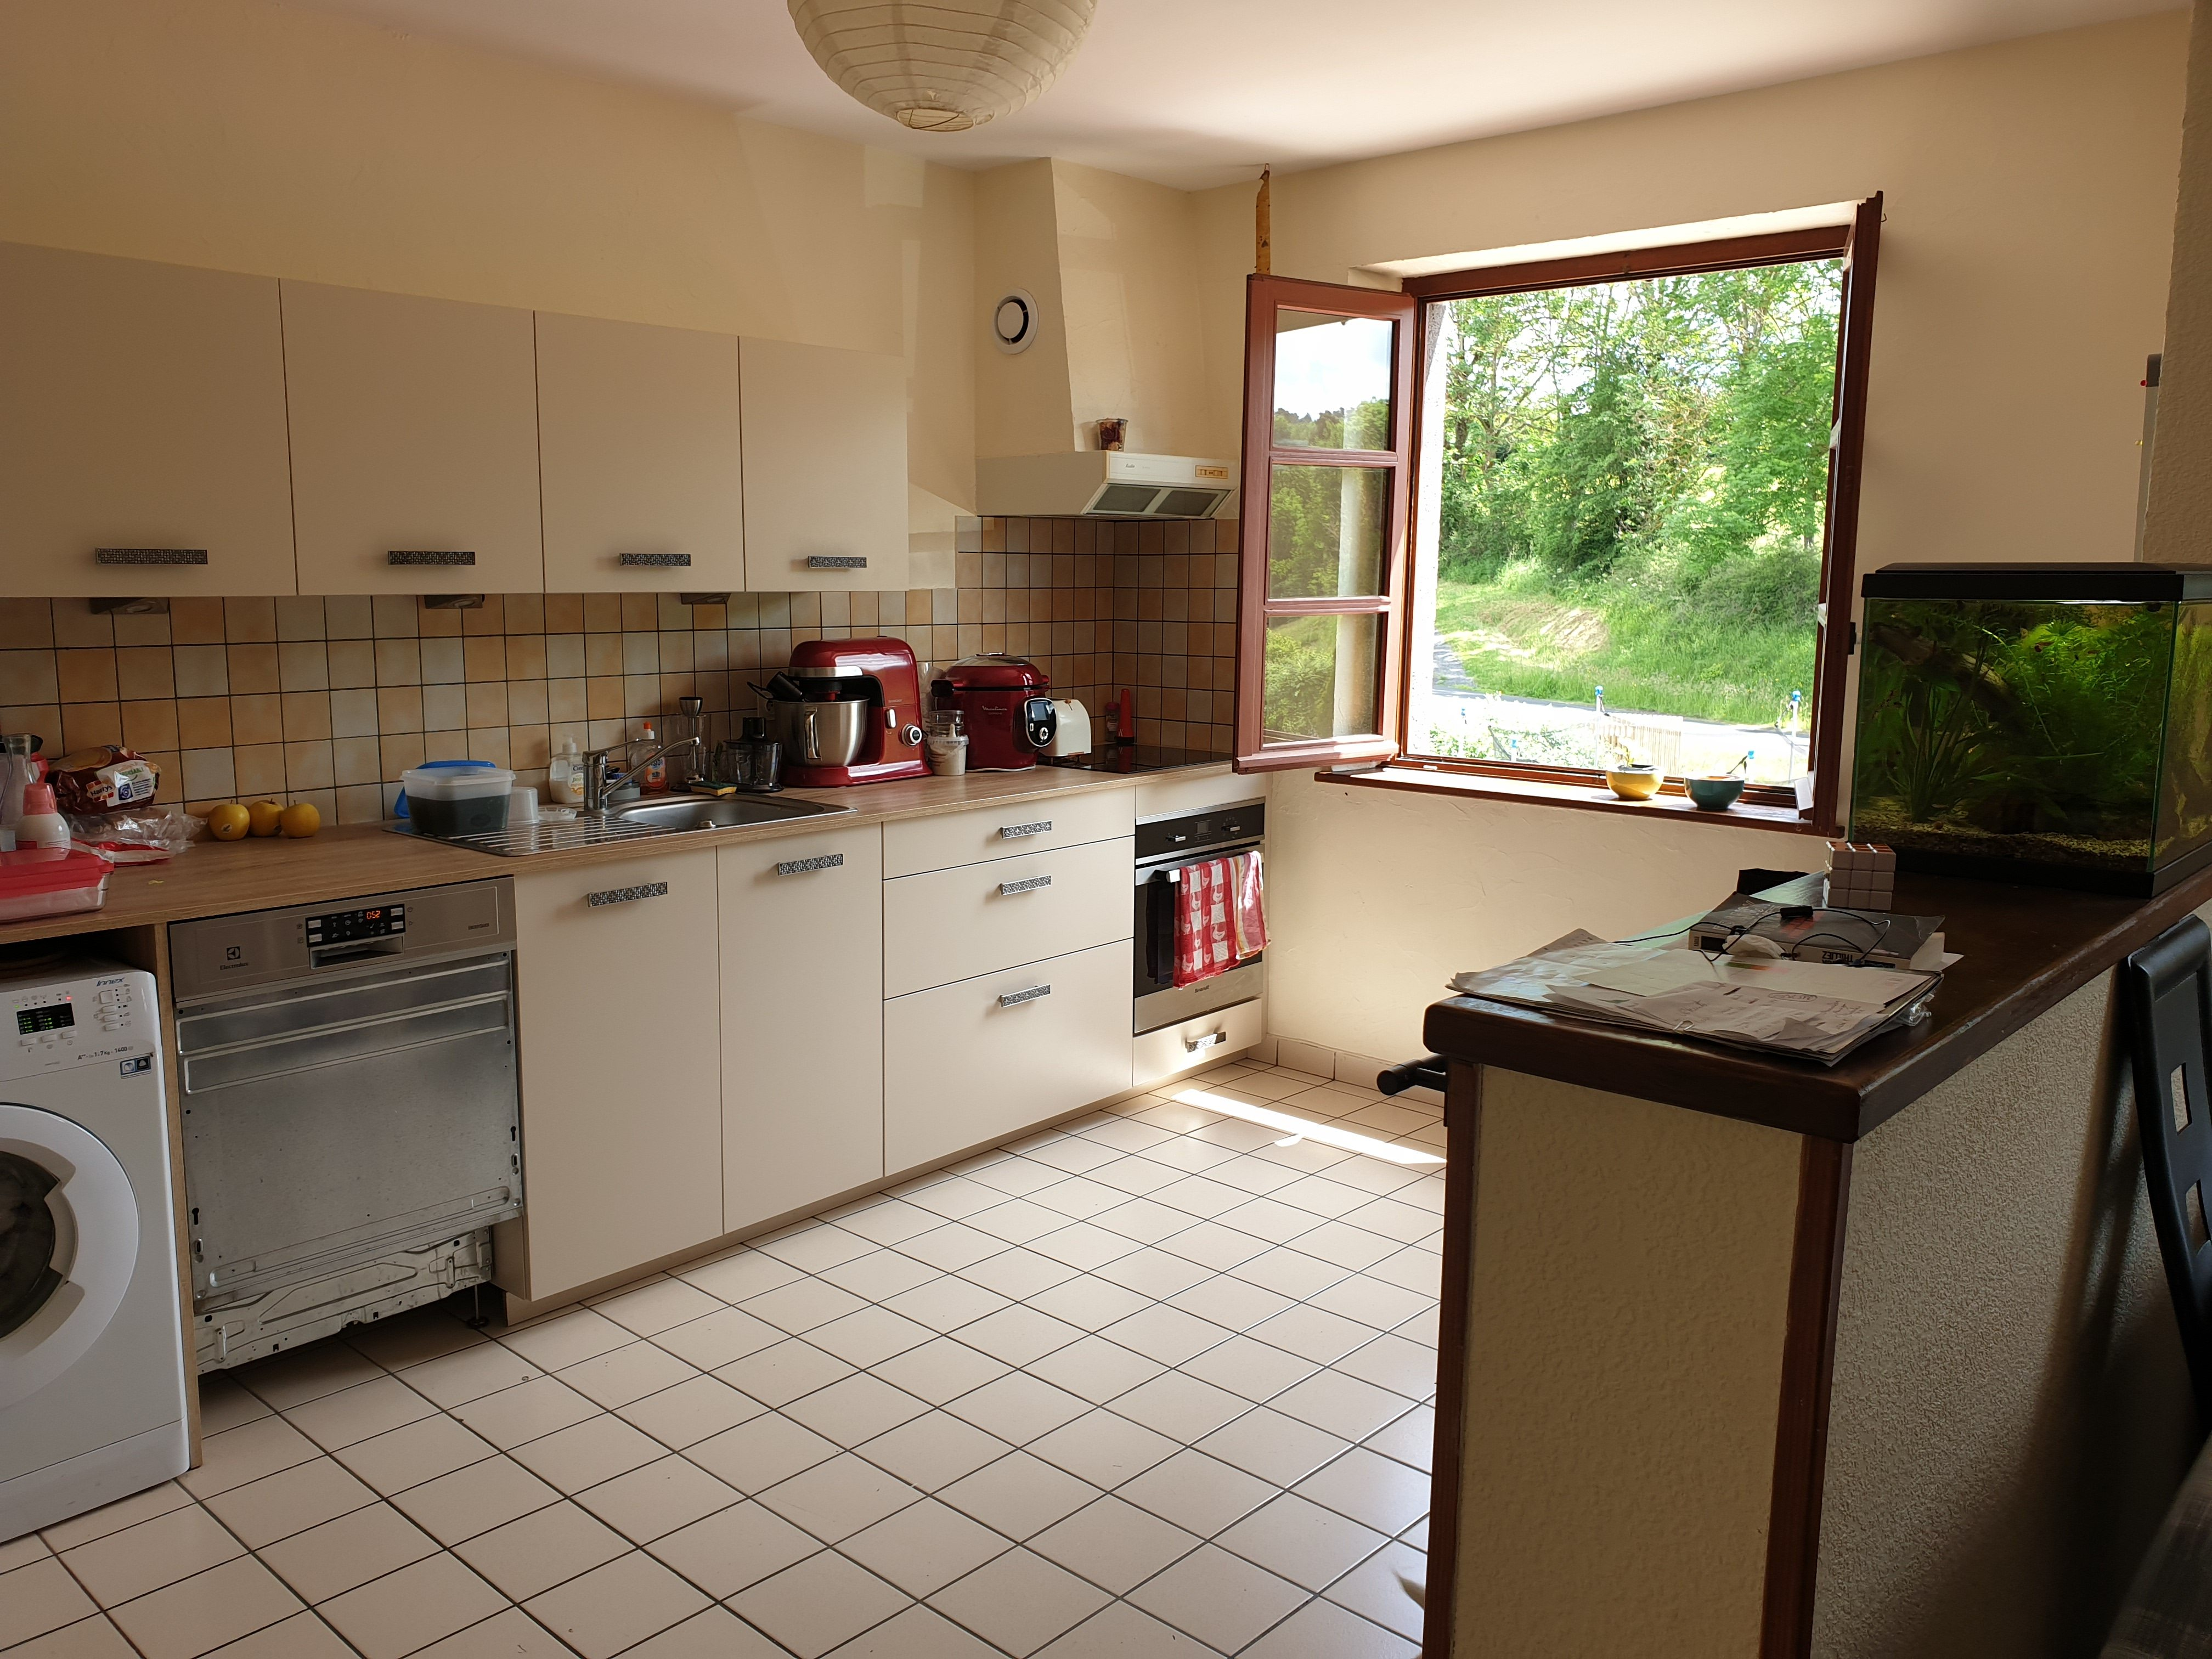 appartement au bord de rivière, Photo 1